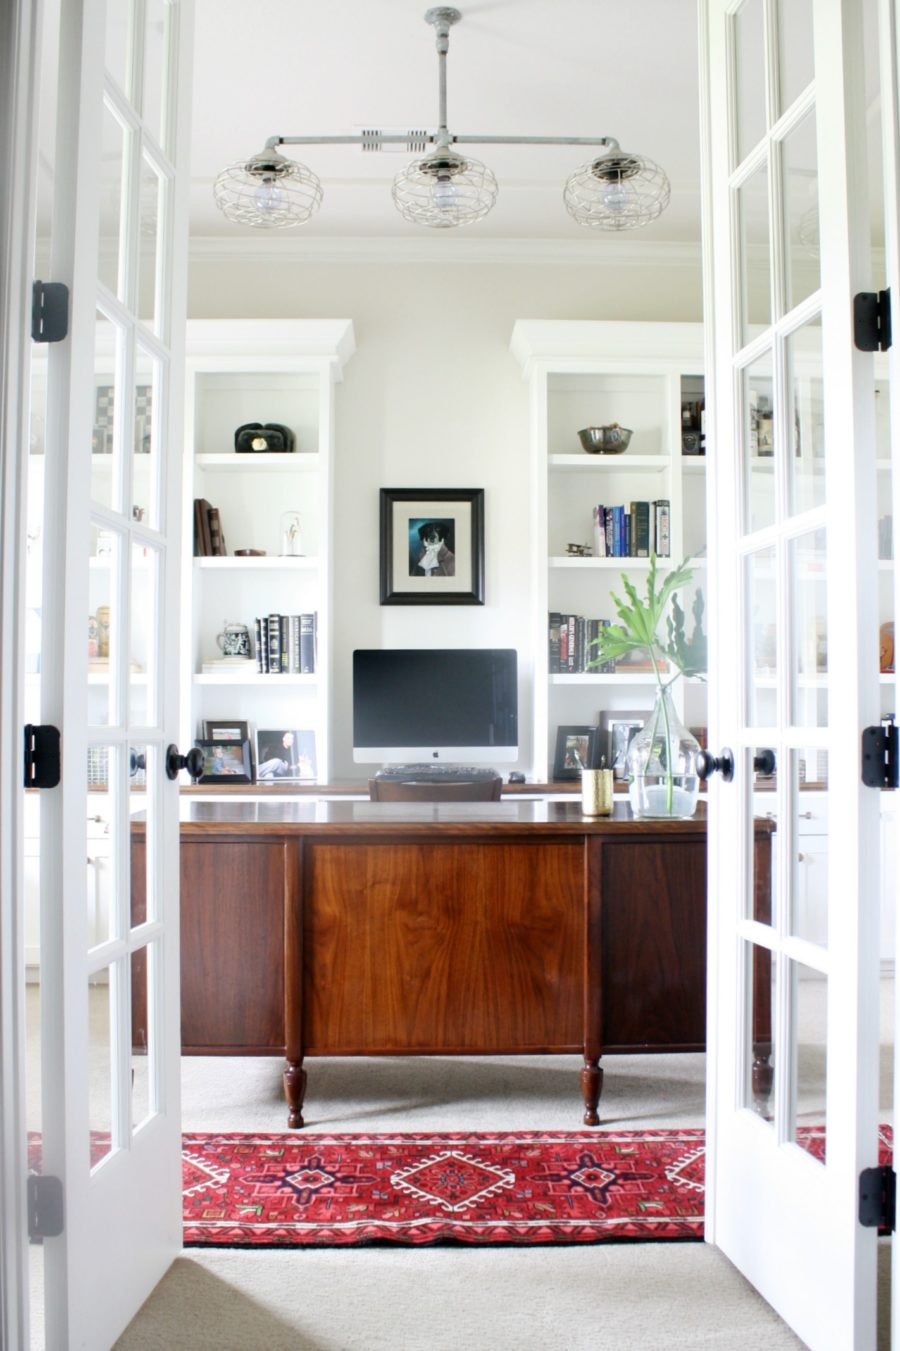 French Doors Opening Into Home Office With Dark Wood Desk And Built In  Bookcases ...